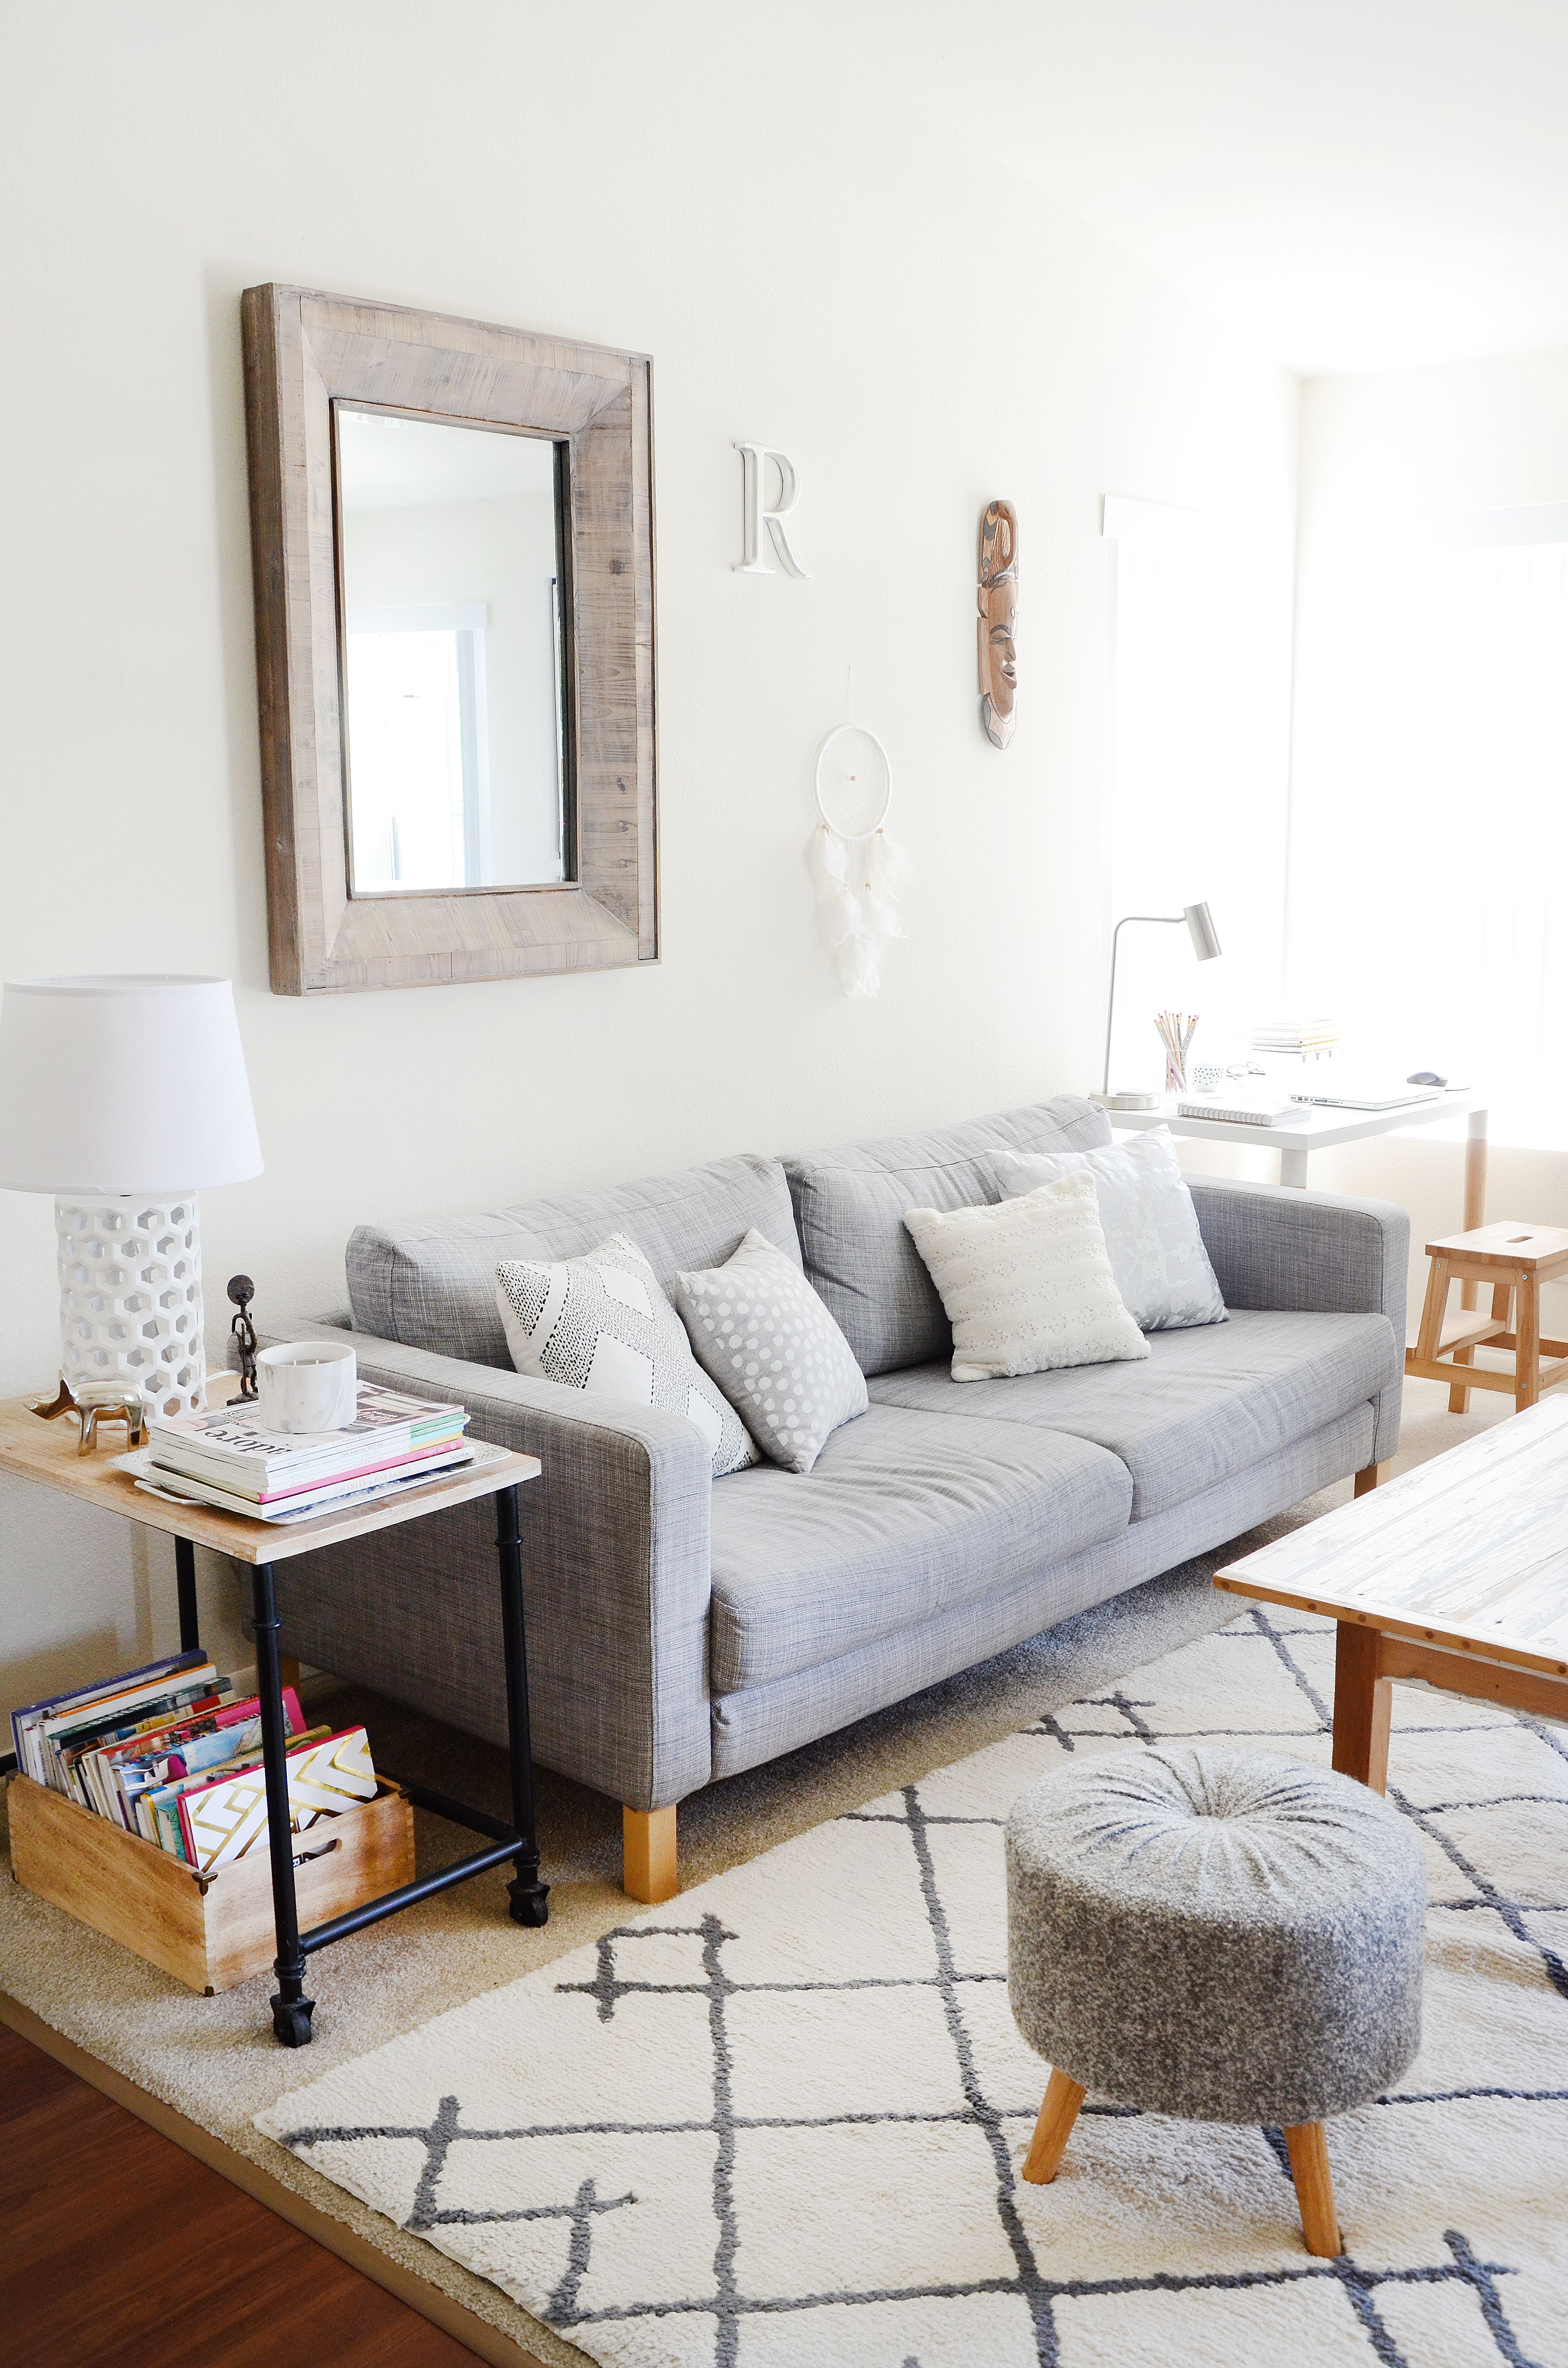 House Tour: A Sunny Mix of Old & New in California | Living rooms ...